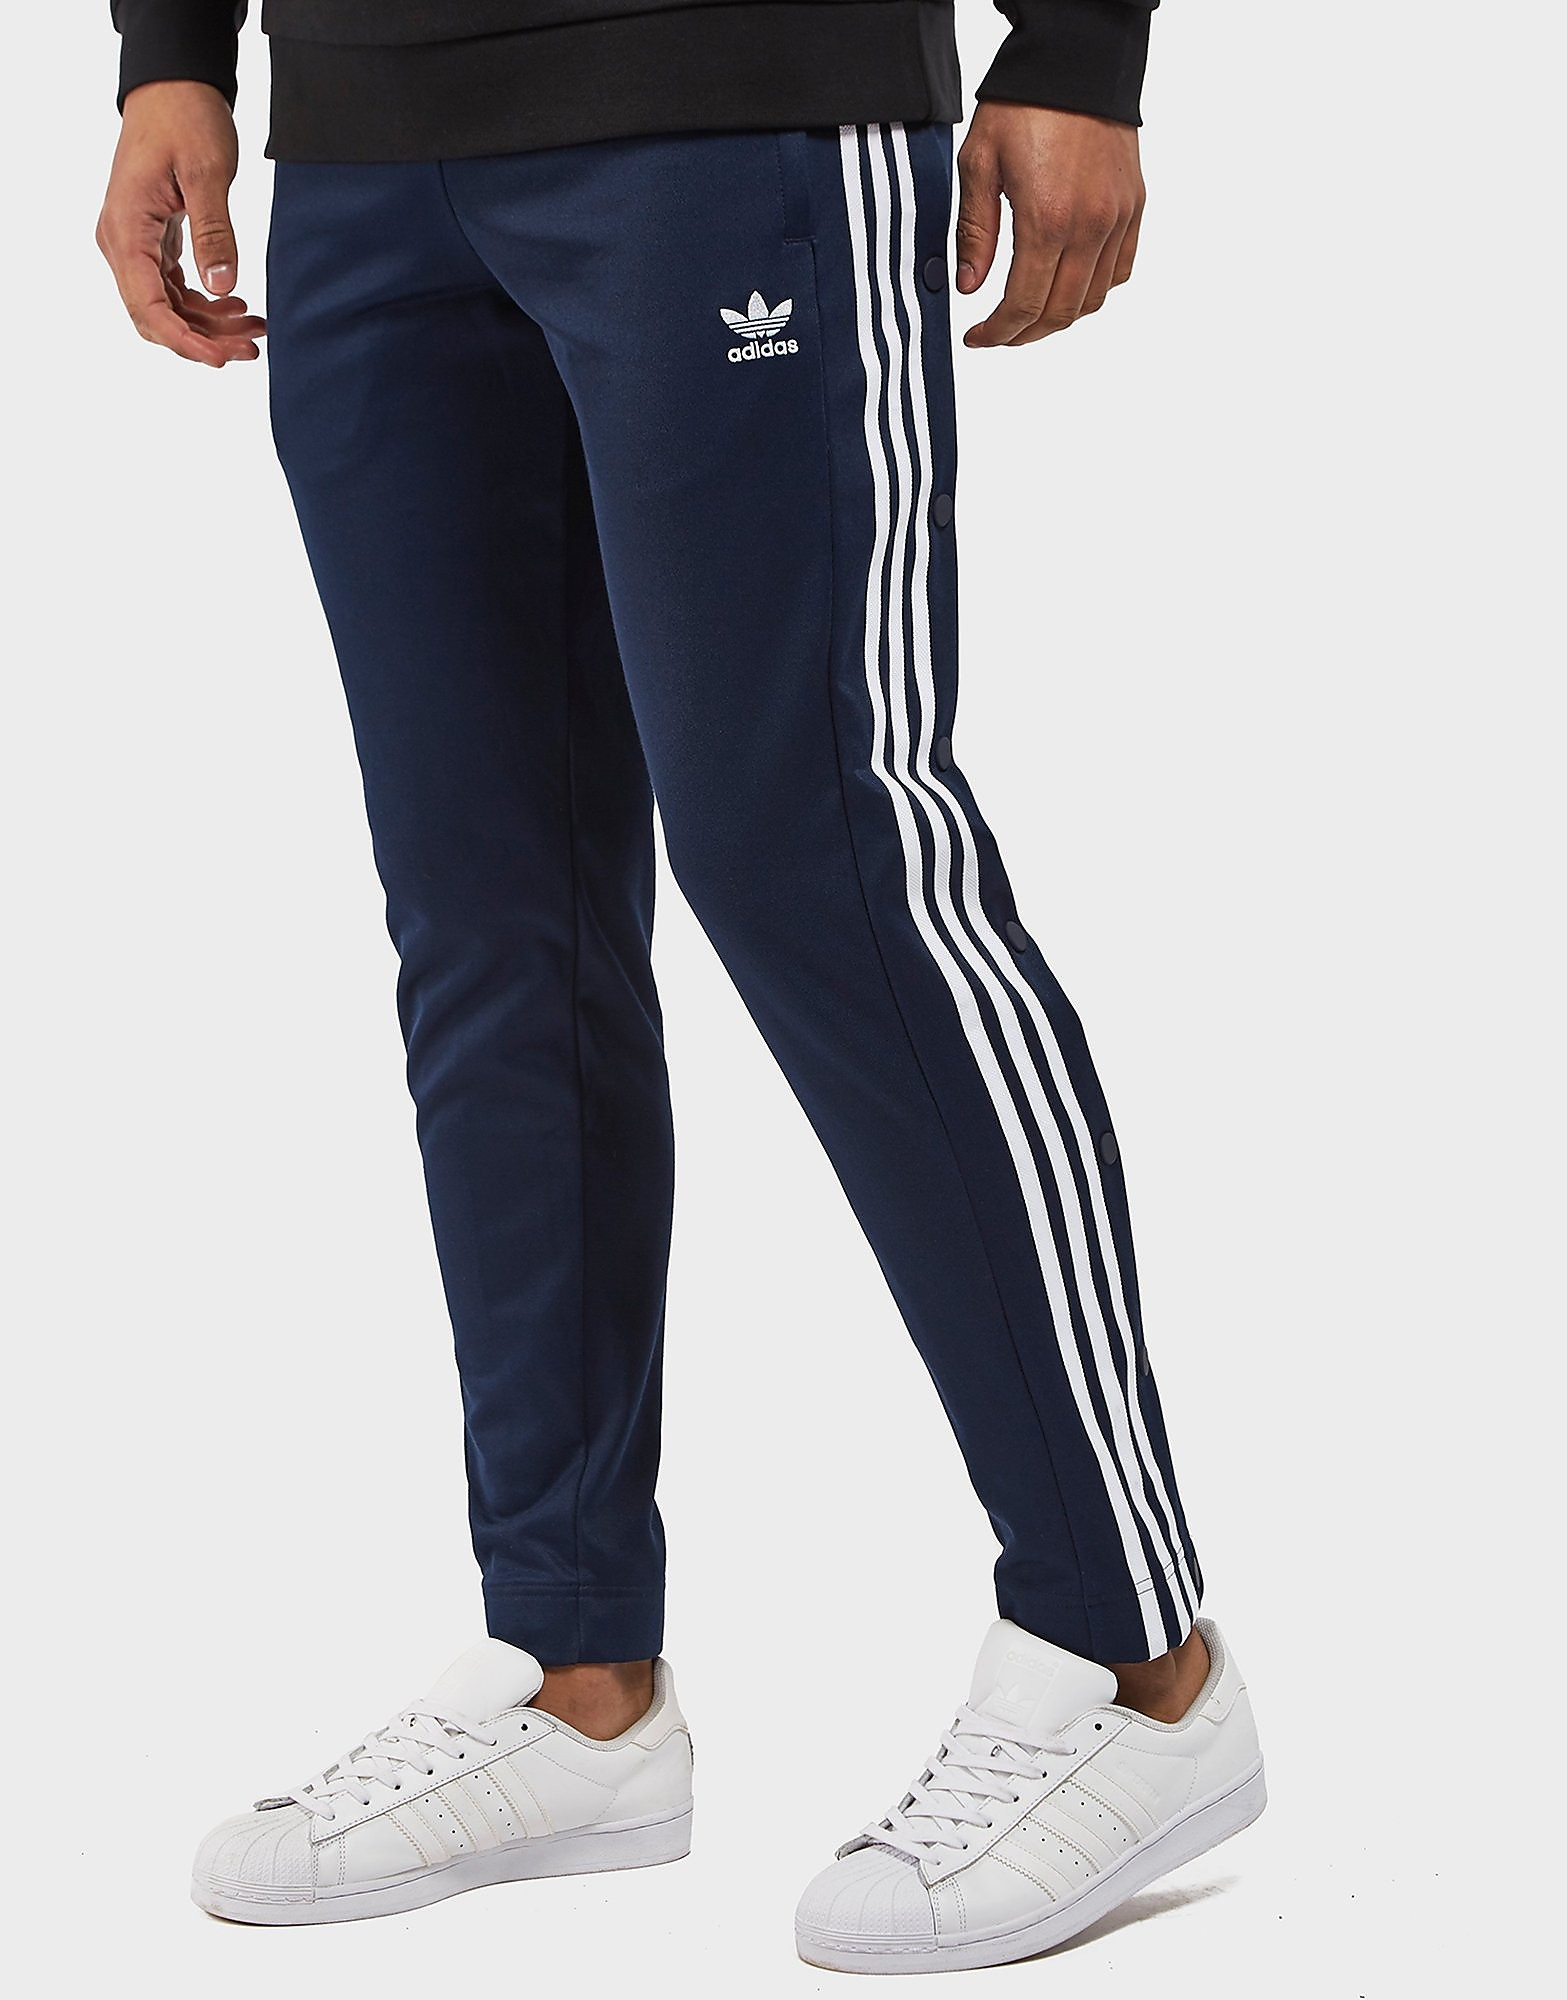 adidas Originals Adibreak Snap Track Pants